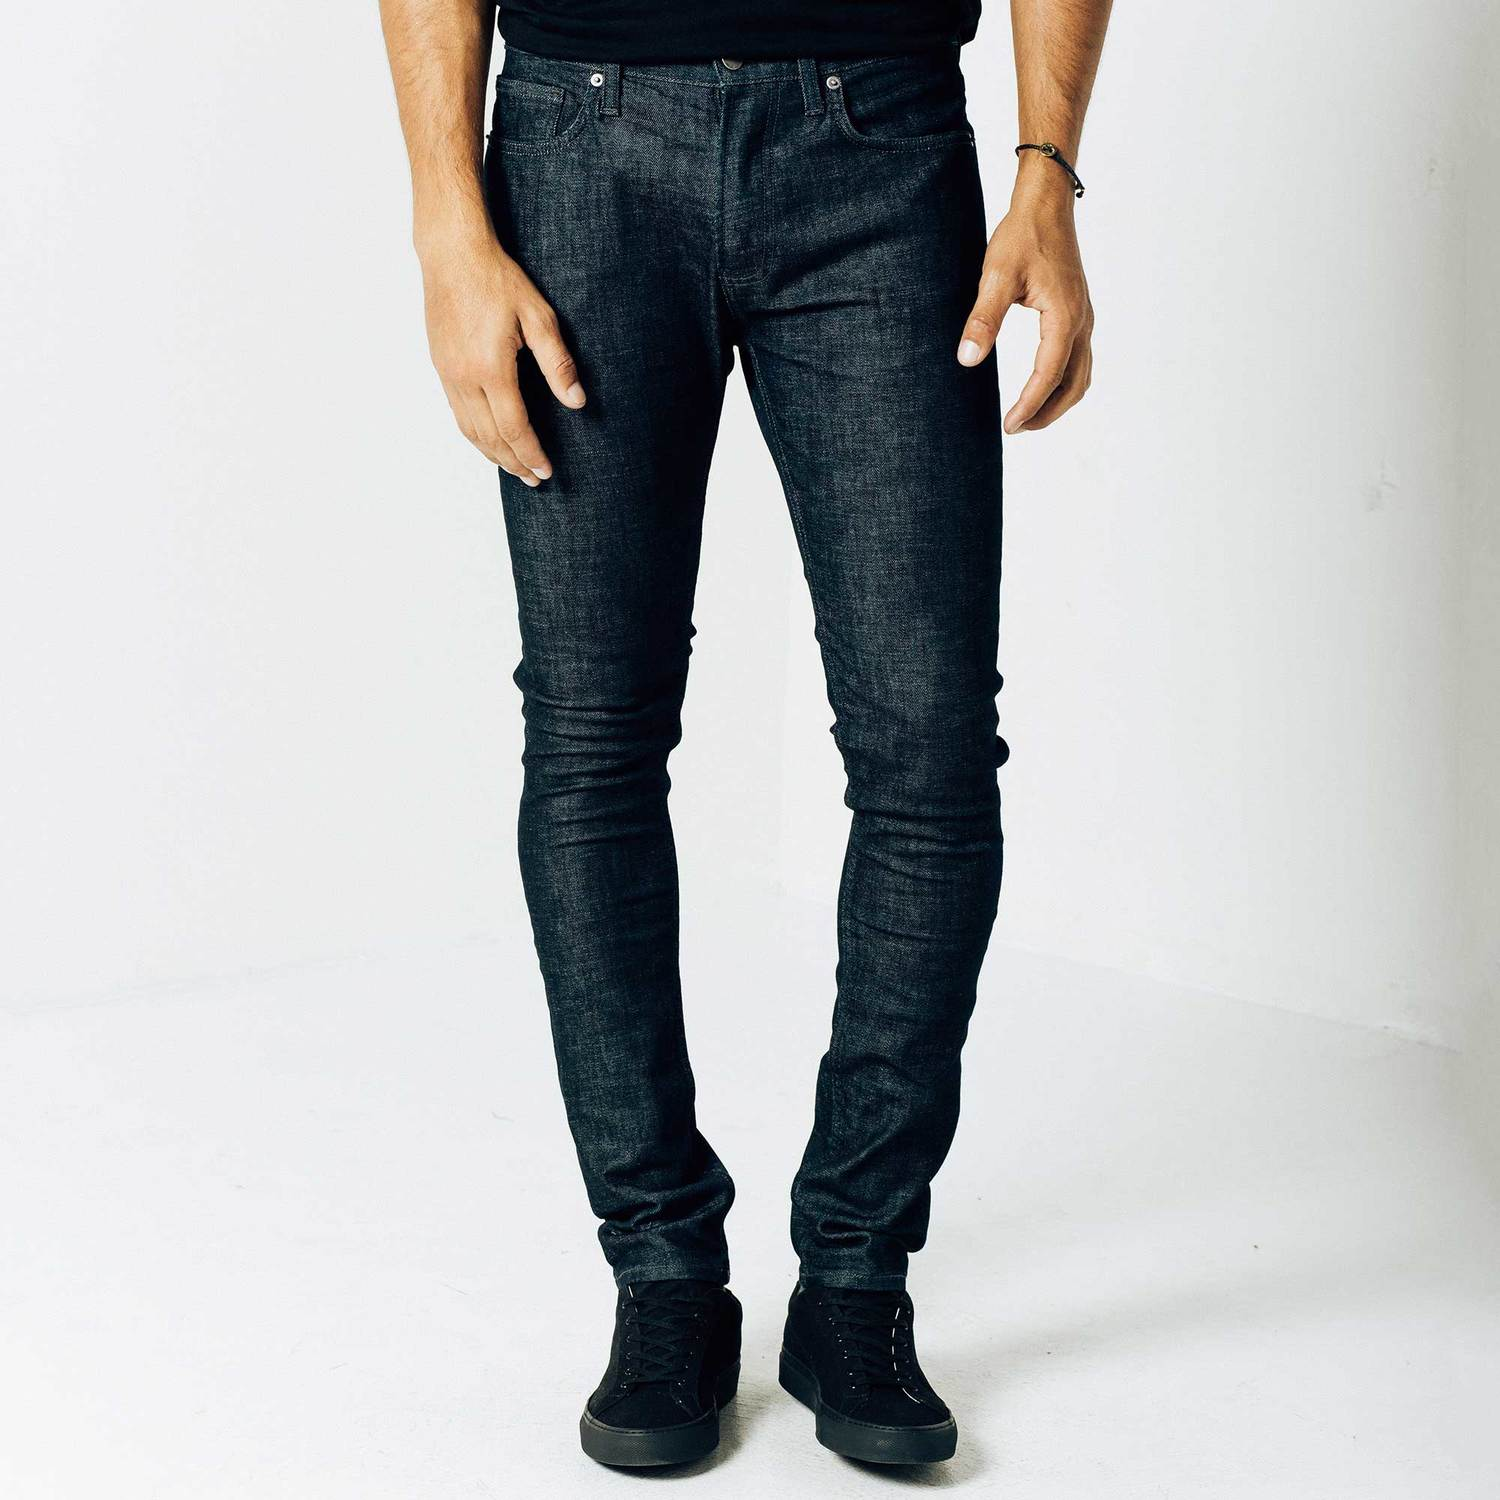 Mens Skinny Jeans Inside Sale Best Wholesale Official Site Cheap Price Cheap Price Factory Outlet Cheap Find Great A2ZVqA